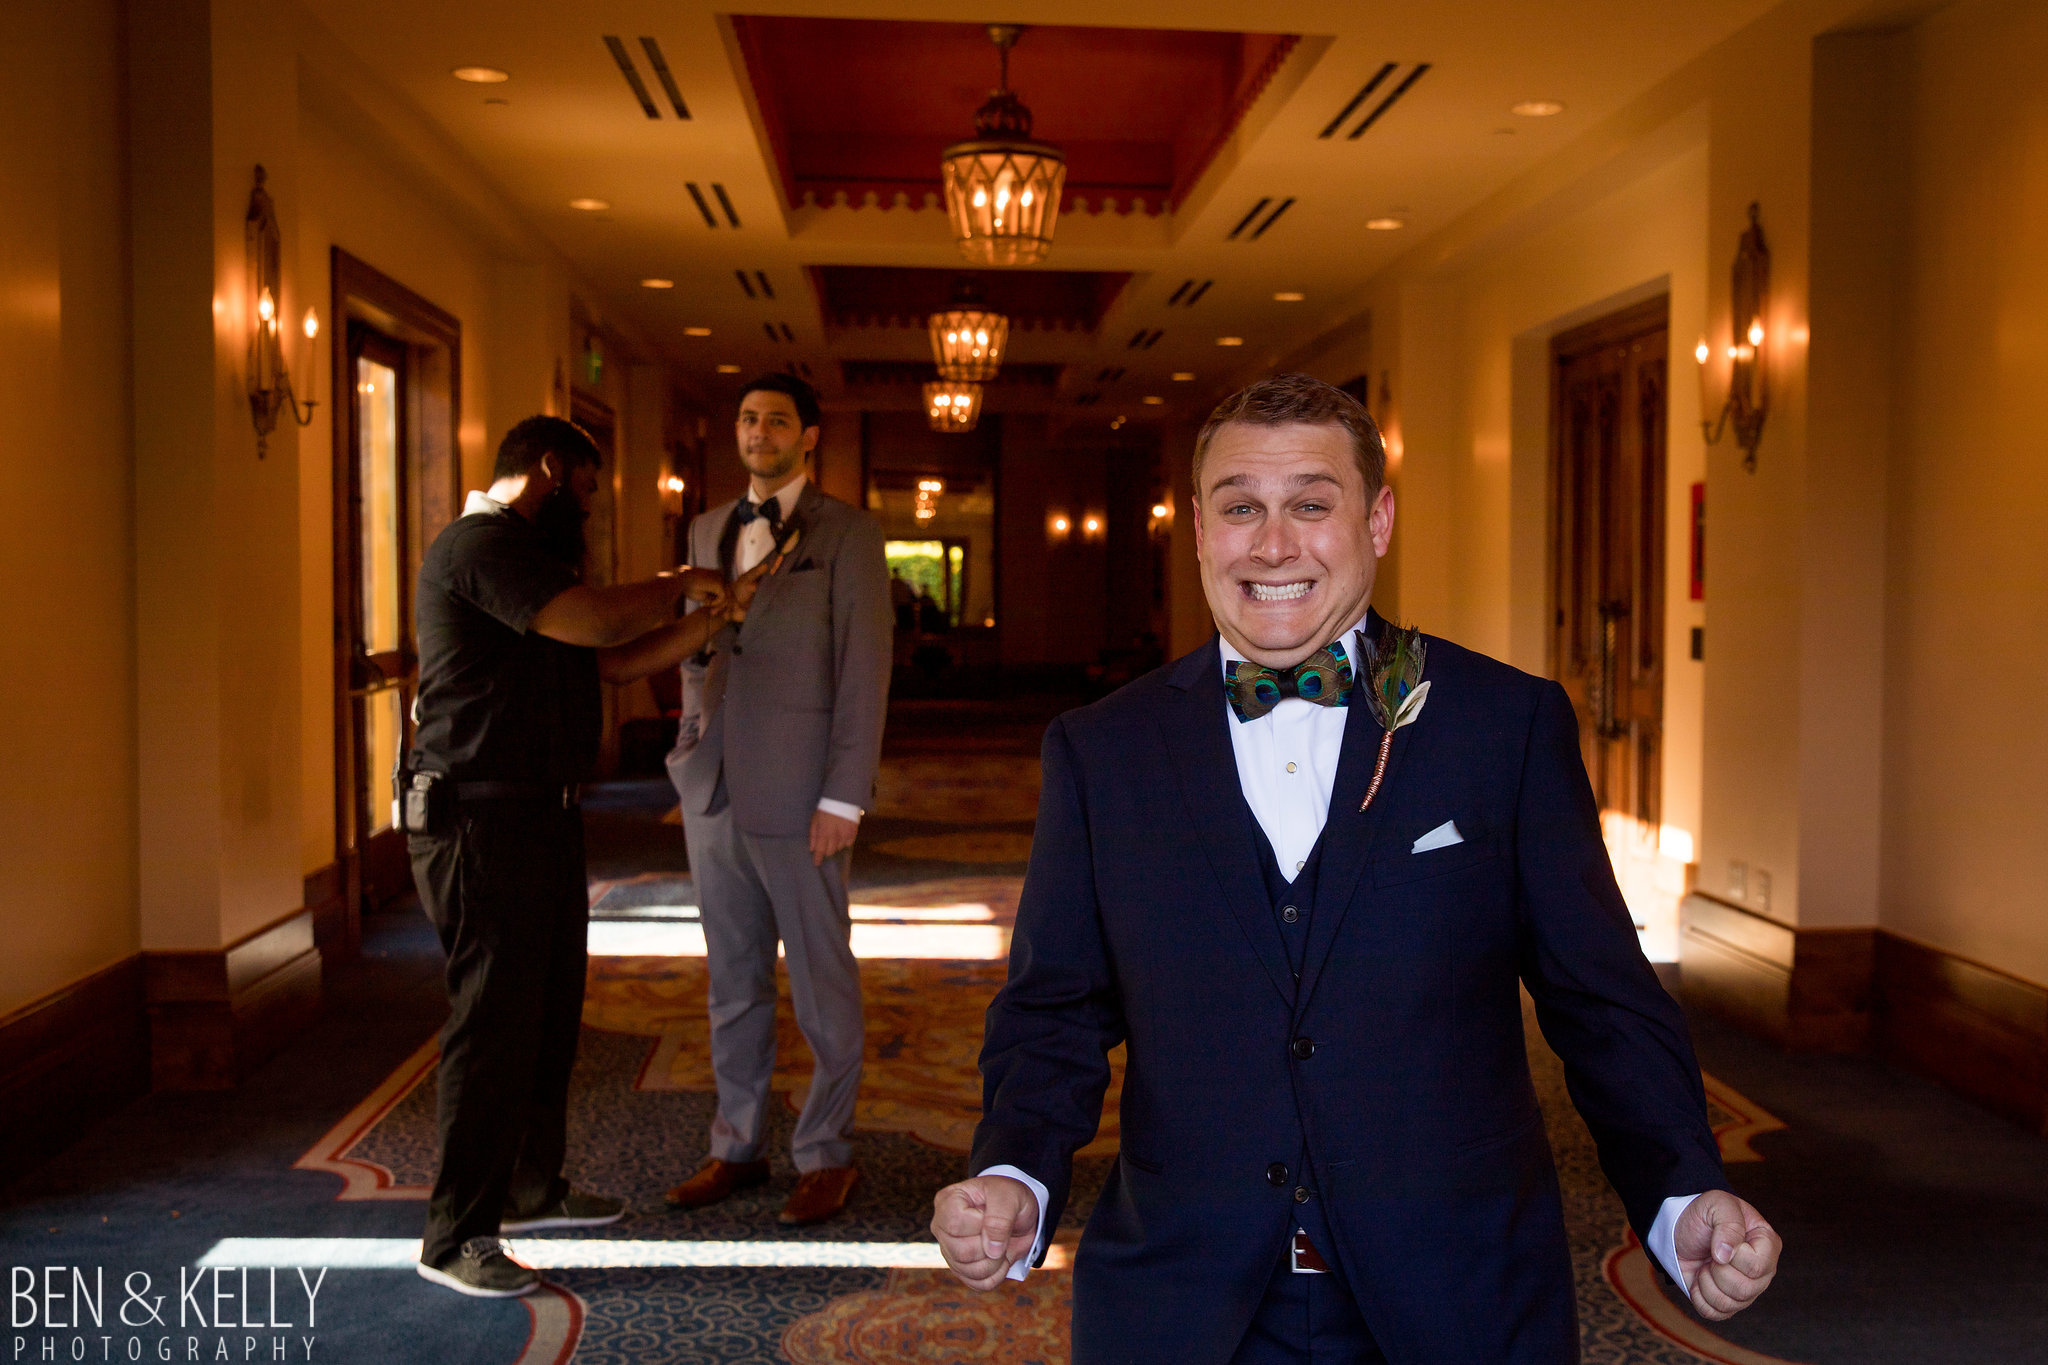 11 excited groom waiting to walk down aisle wedding anticipation walking down the aisle Life Design Events photo by Ben and Kelly Photography.jpg